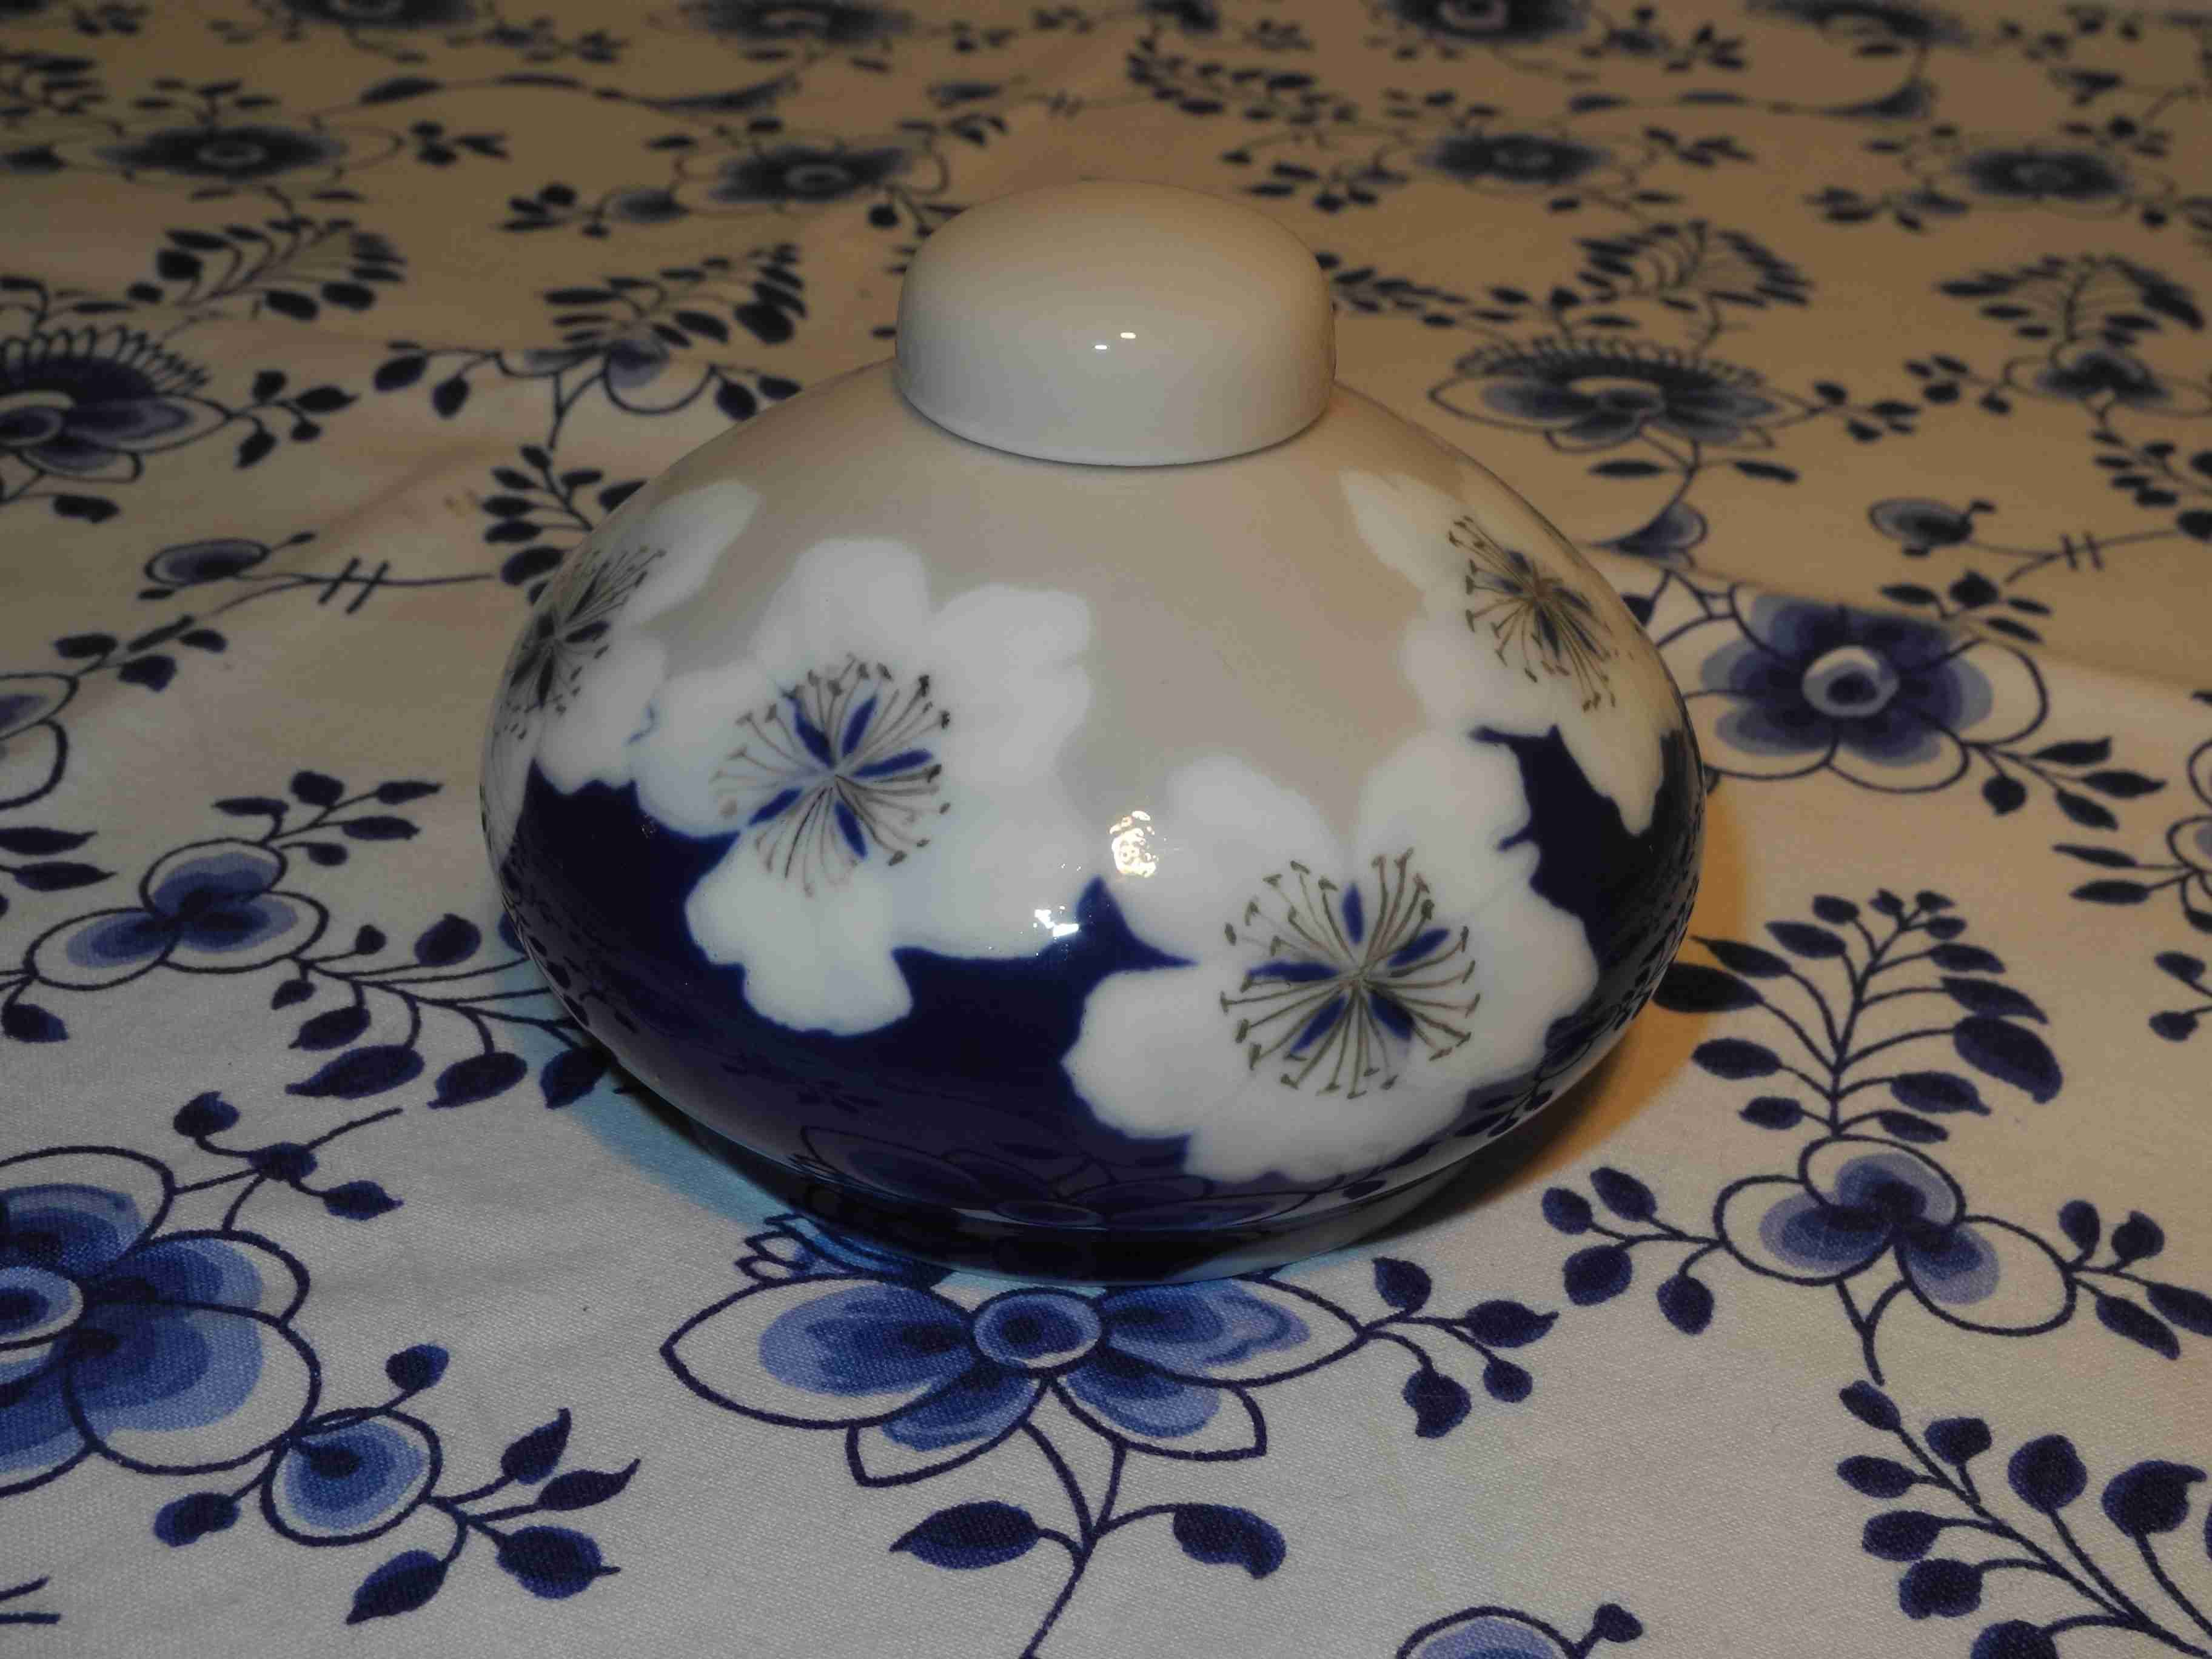 Lidded flower vase